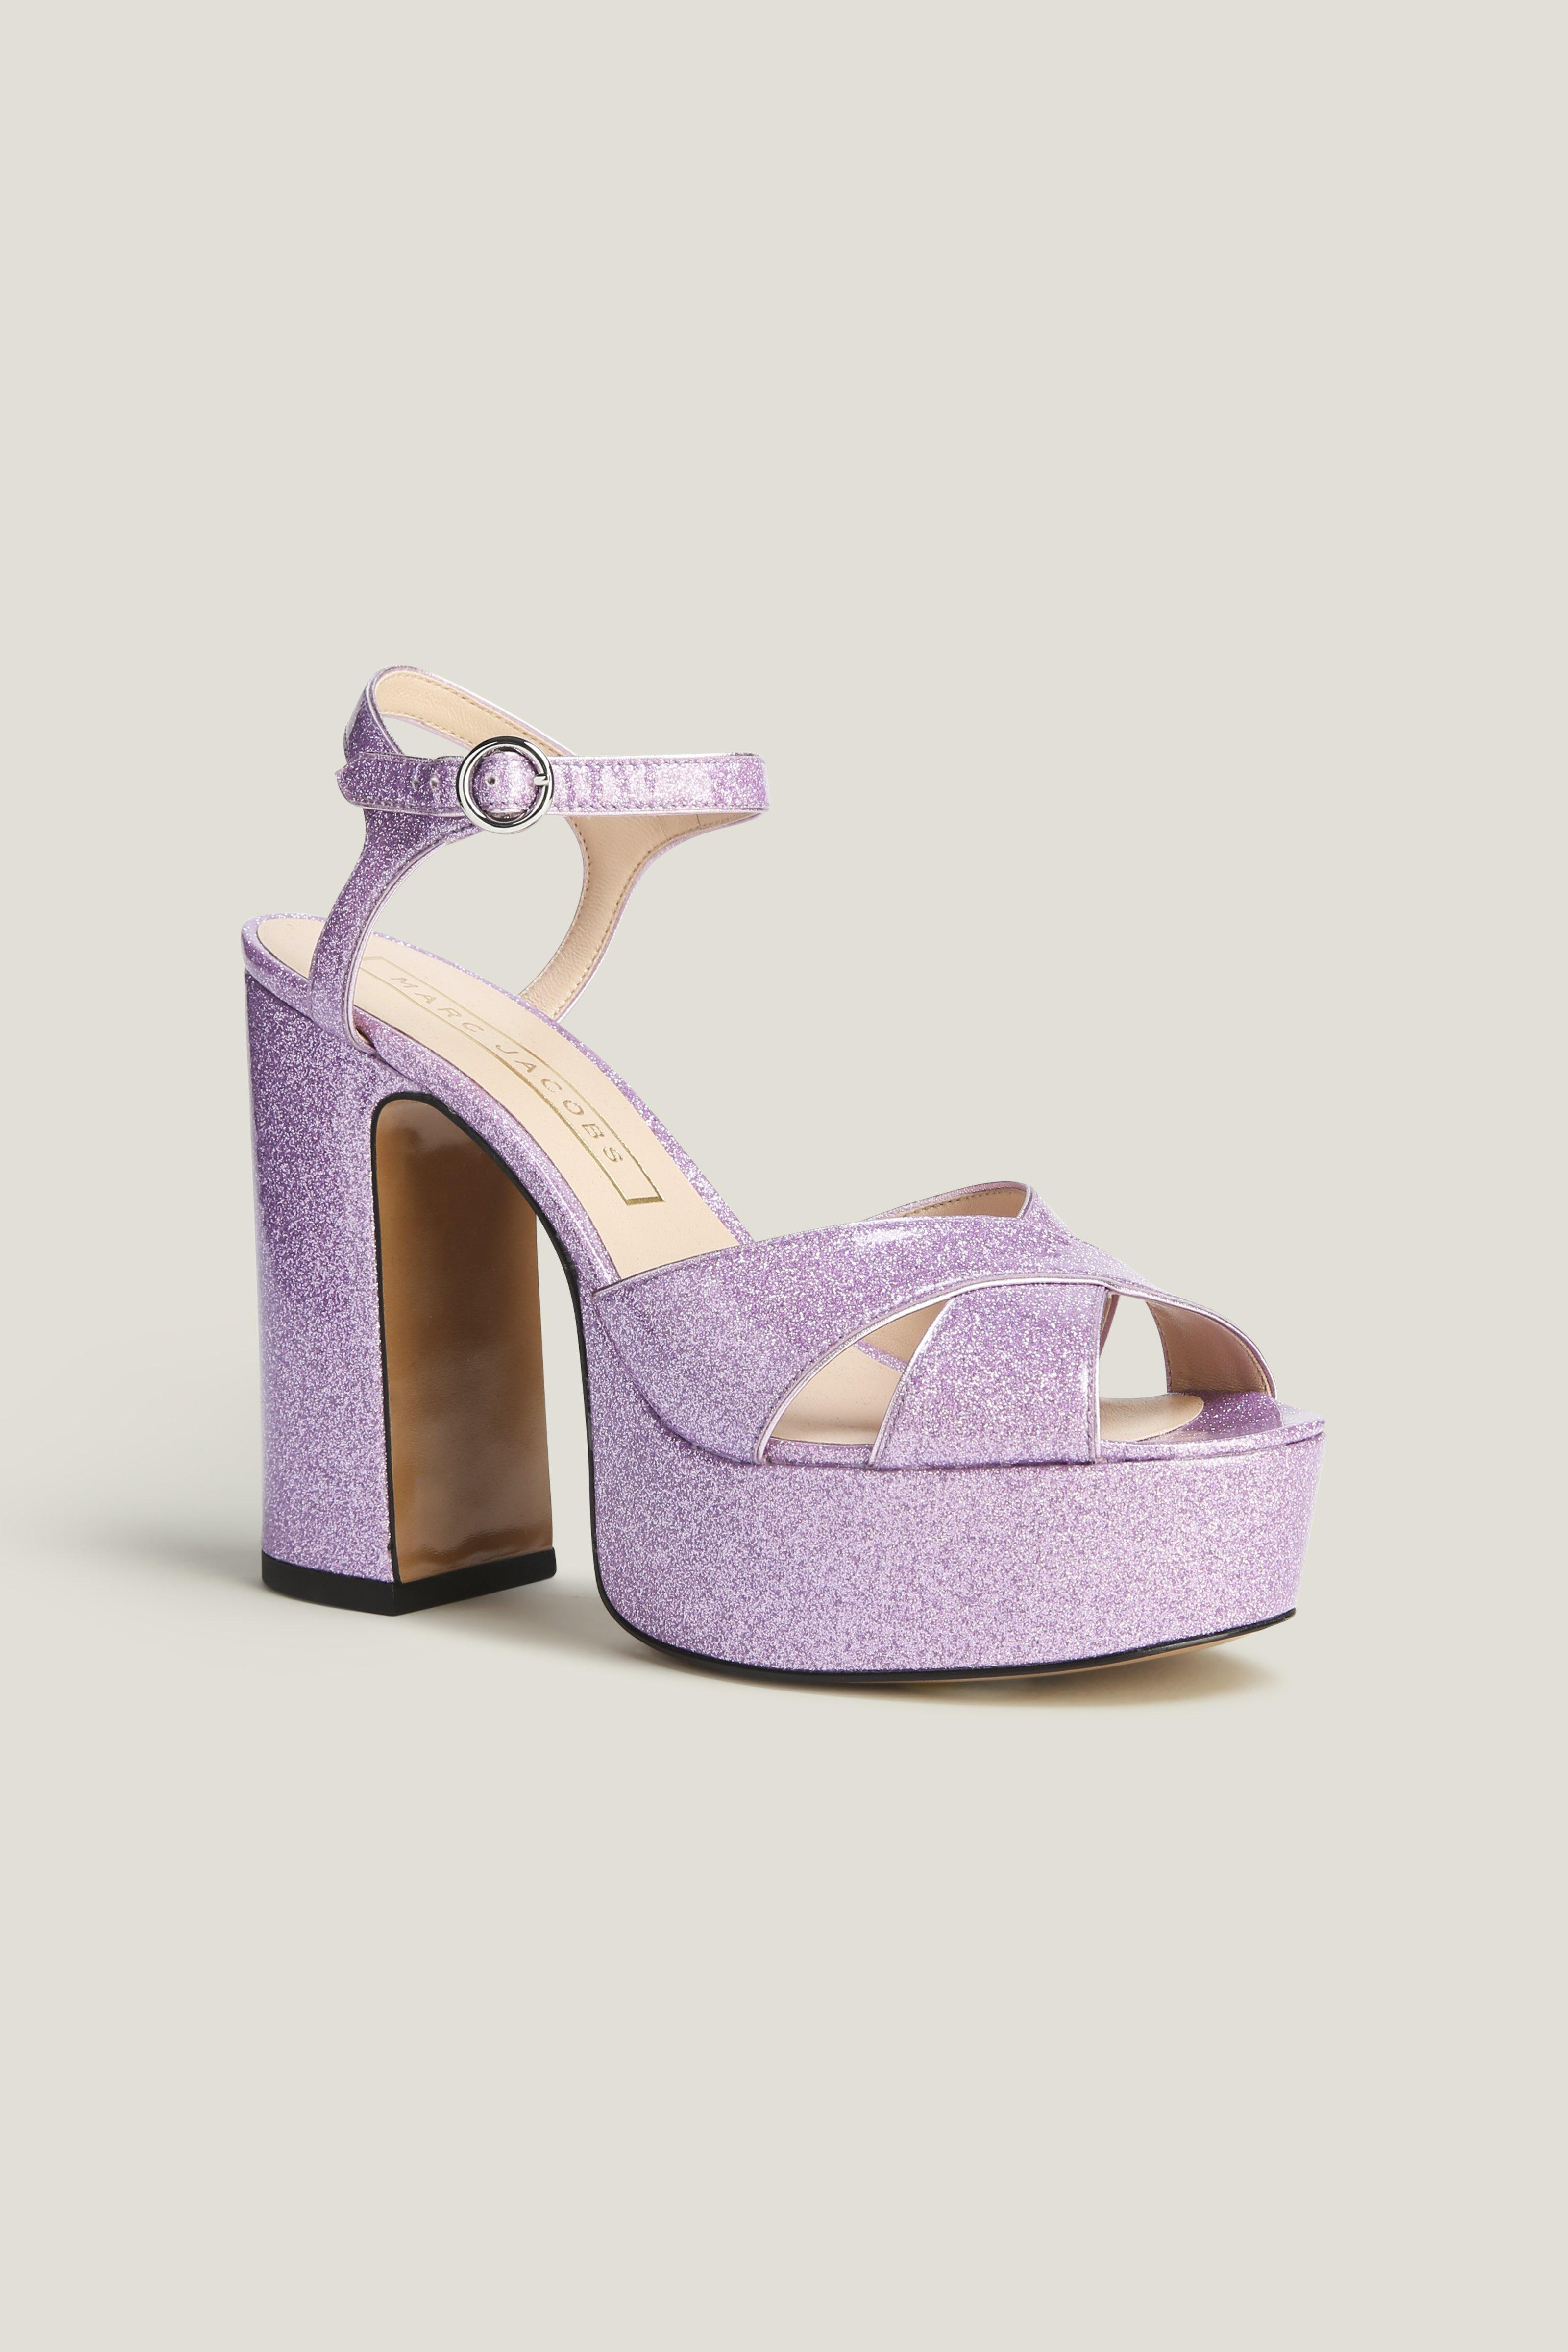 43998573bbbec Marc Jacobs Woman Debbie Glittered Patent-Leather Platform Sandals ...